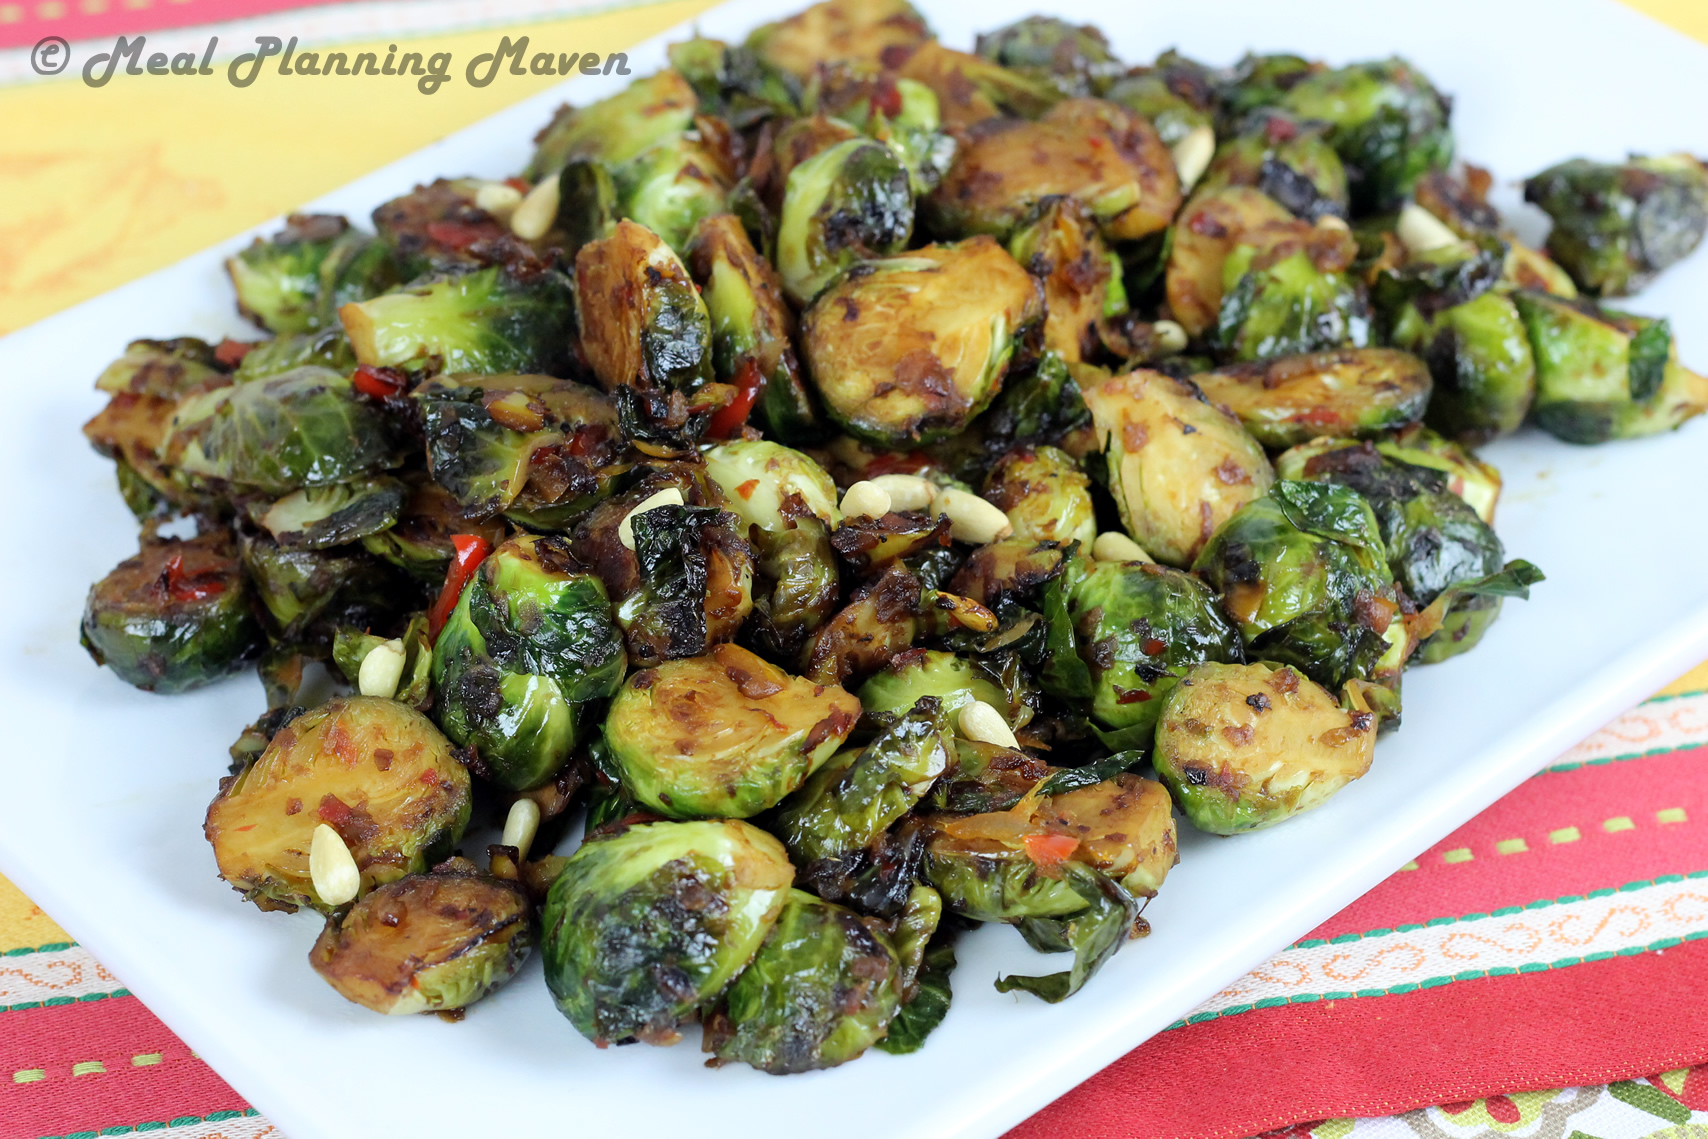 Balsamic-Glazed Brussels Sprouts - Meal Planning Maven